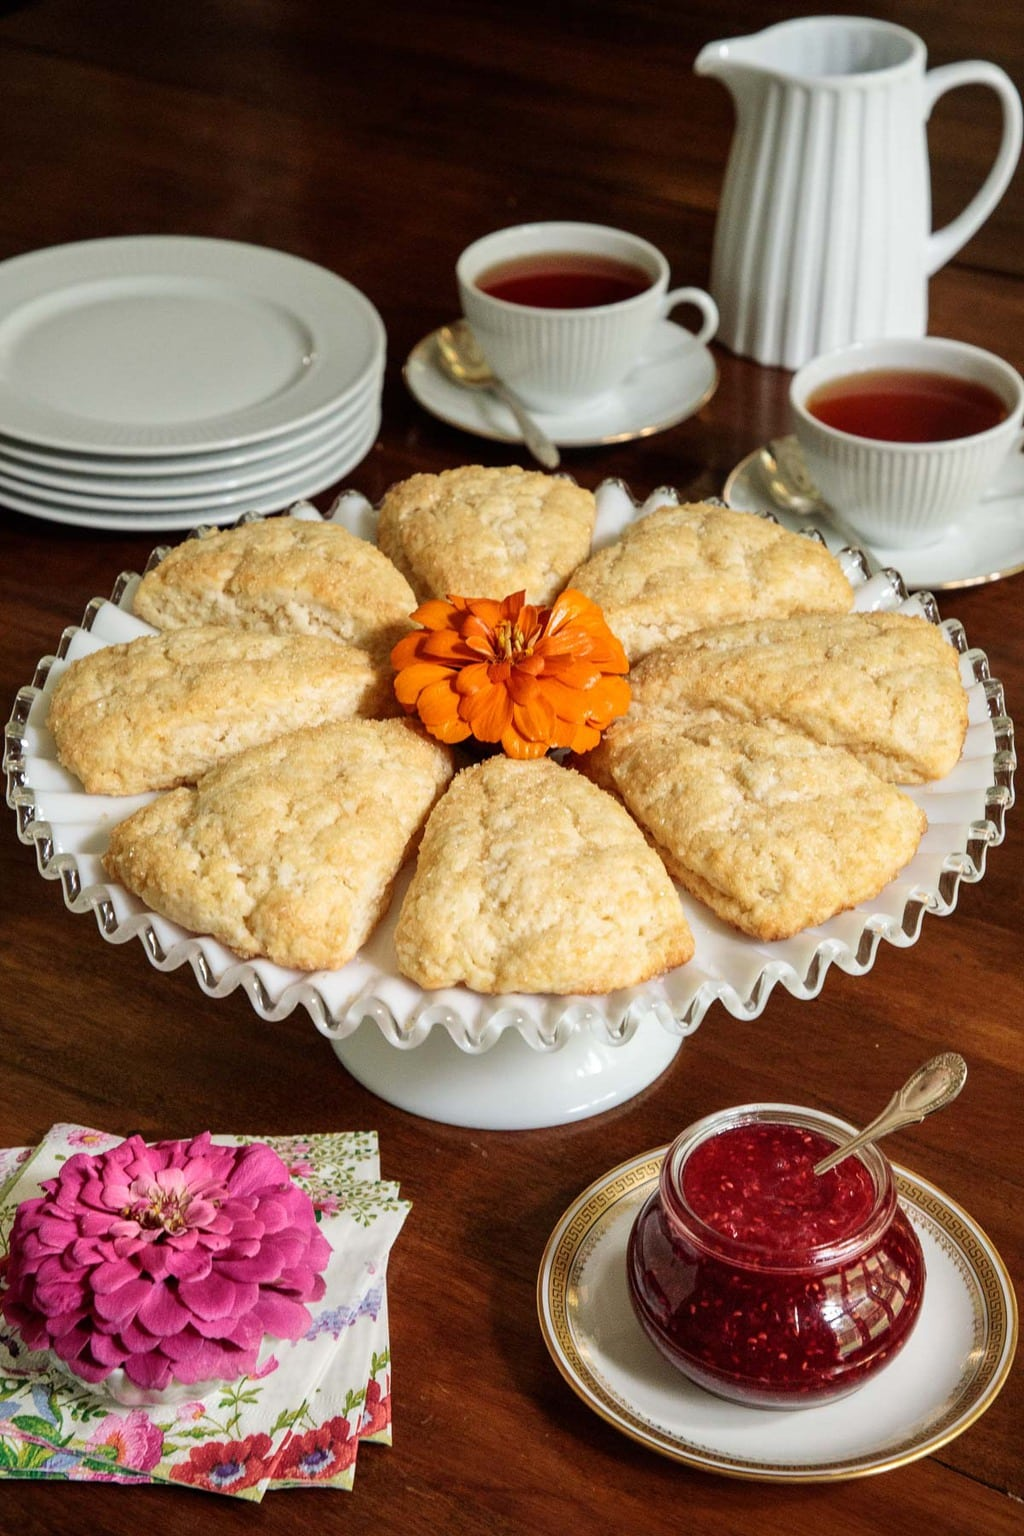 Photo of a plate of Sugar Top Scones surrounded by cups of tea and serving plates.